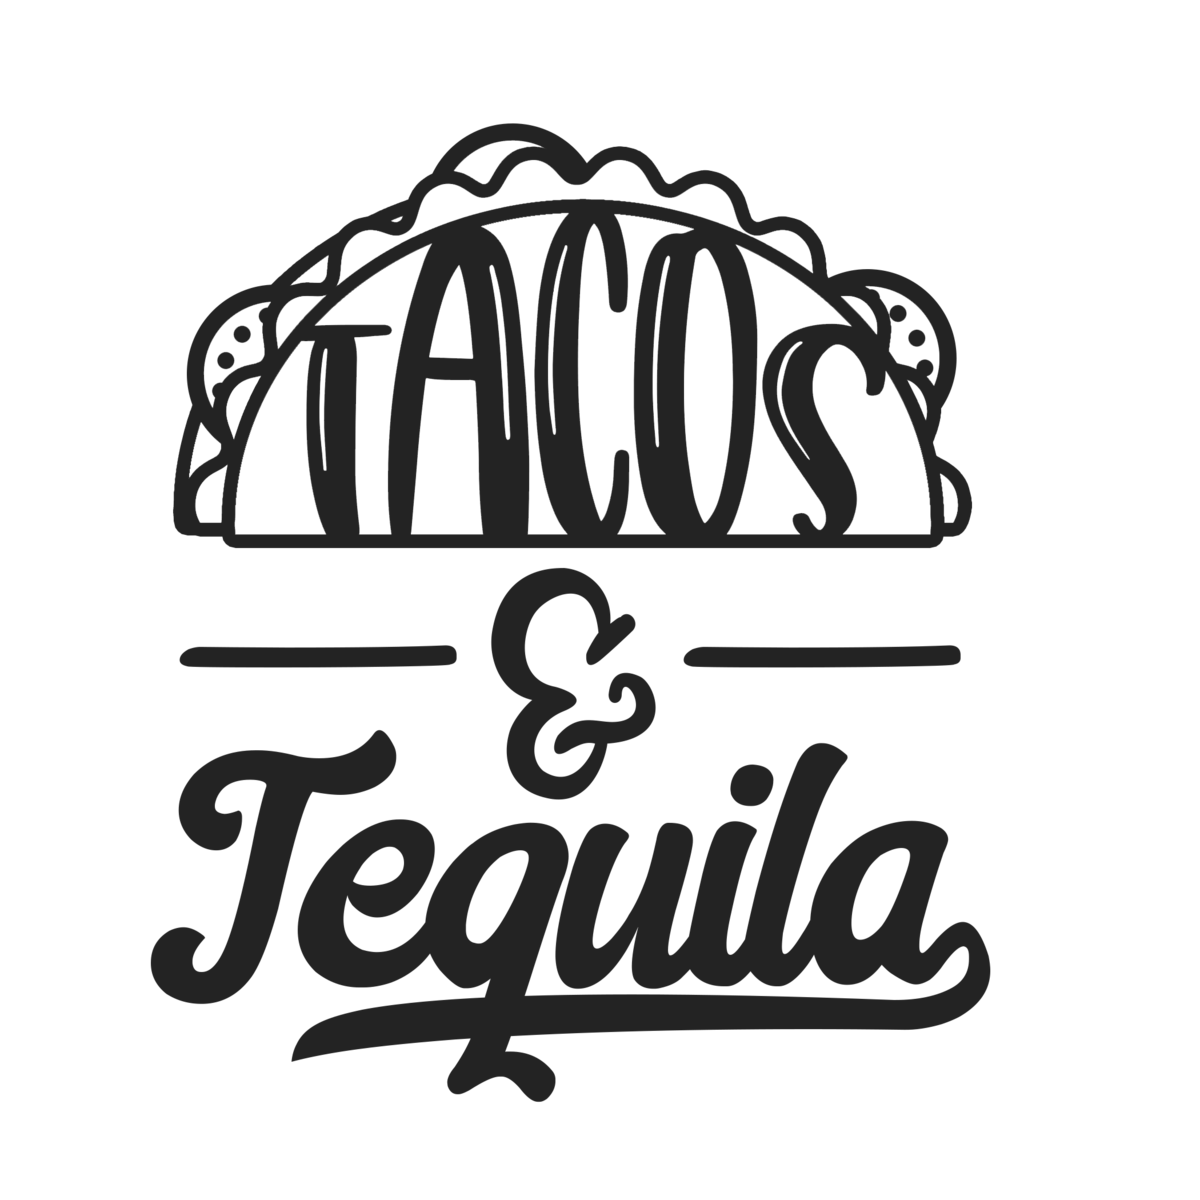 Tacos clipart tequila. And sublimation glitter mud